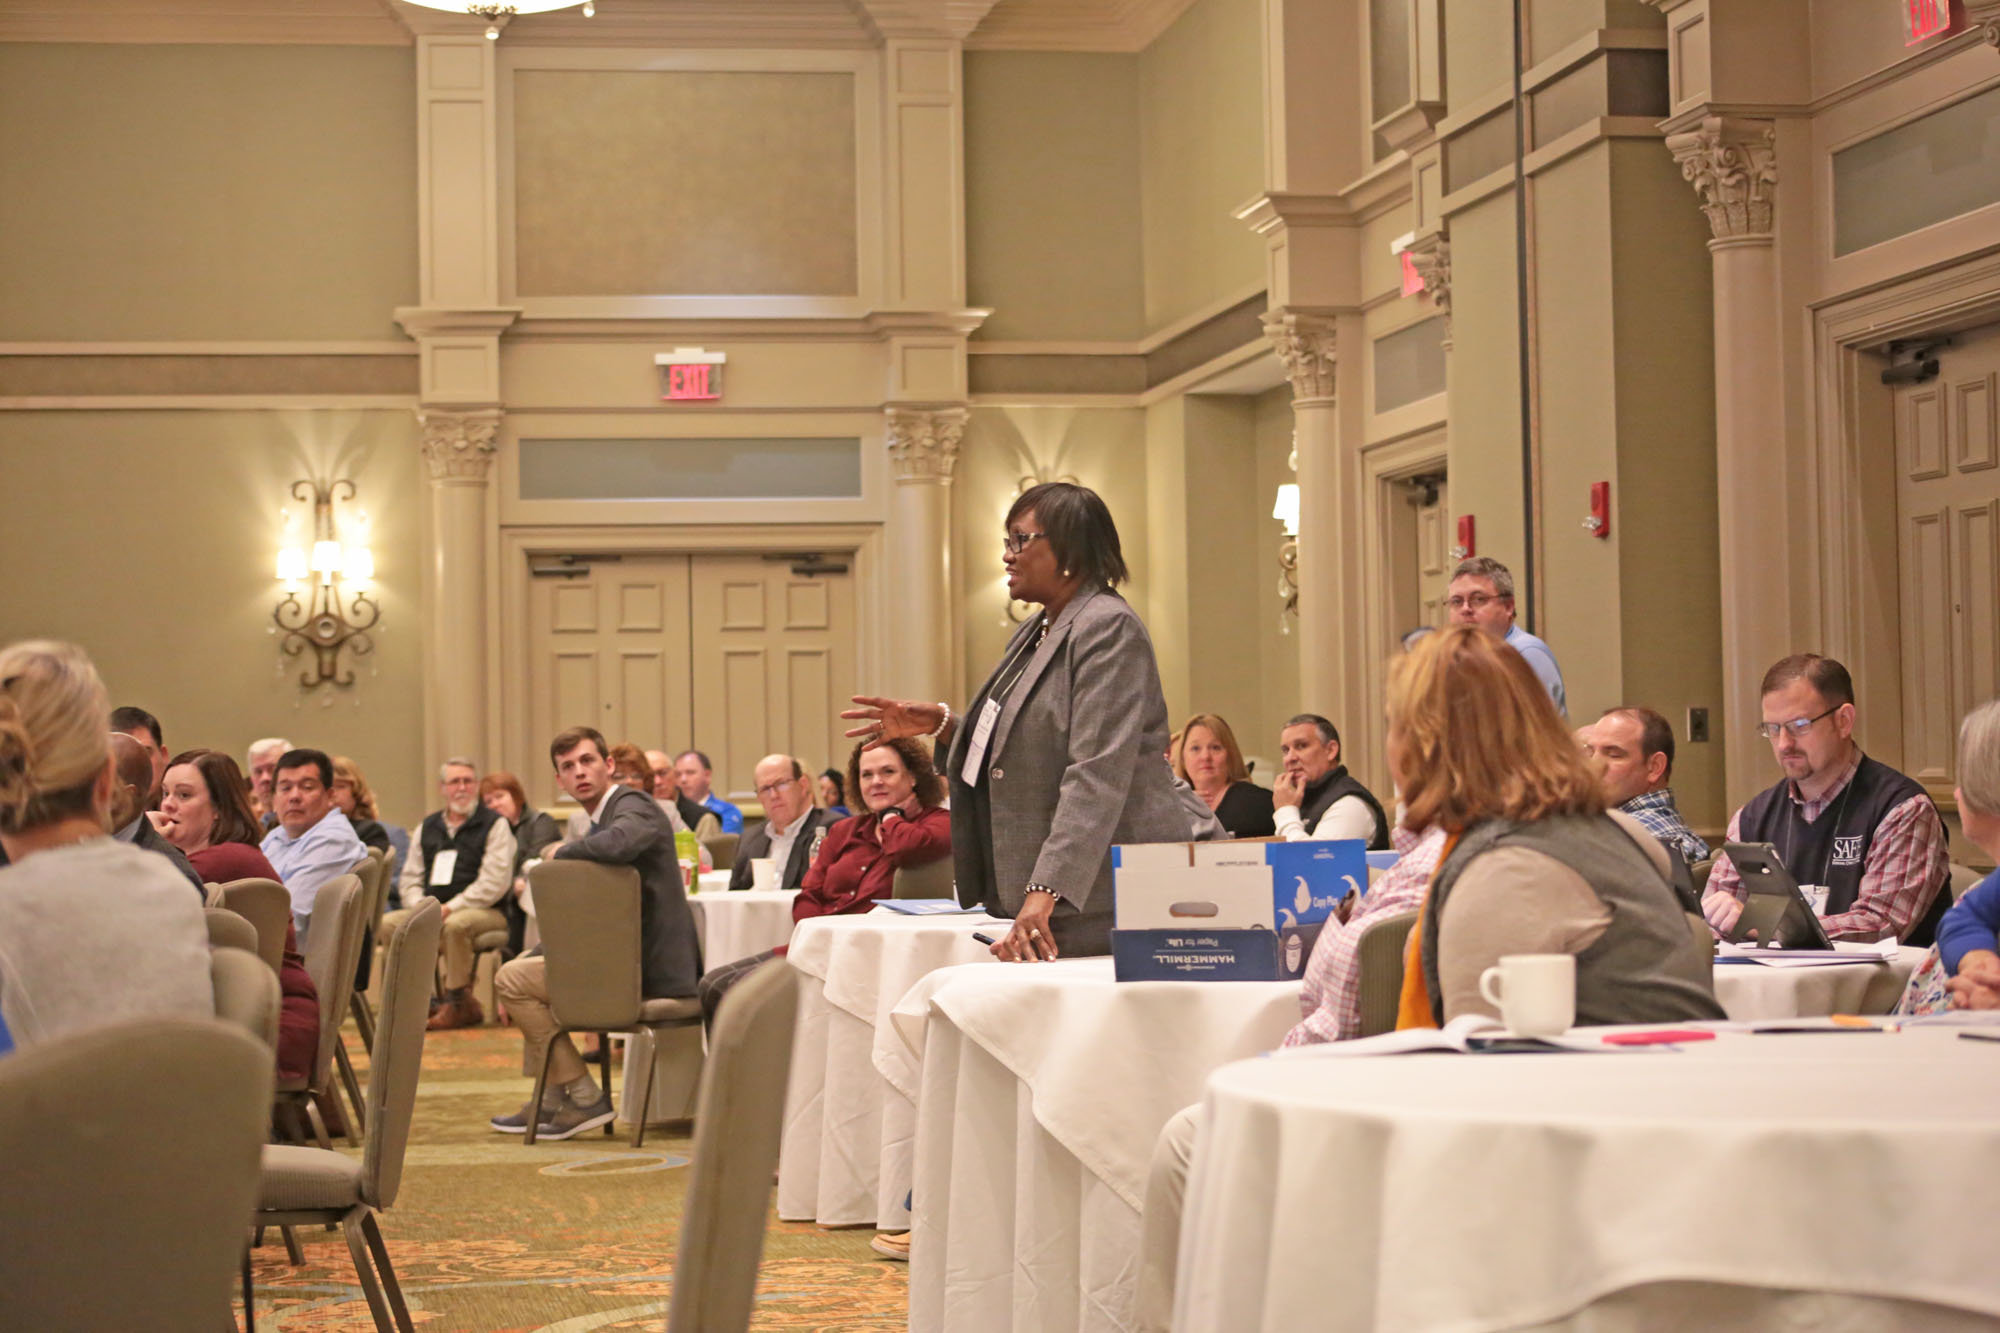 Sumter County Councilwoman Vivian Fleming-McGhaney speaks on Saturday during a panel discussion at the Marina Inn at Grande Dunes in Myrtle Beach during the Greater Sumter Chamber of Commerce annual retreat.